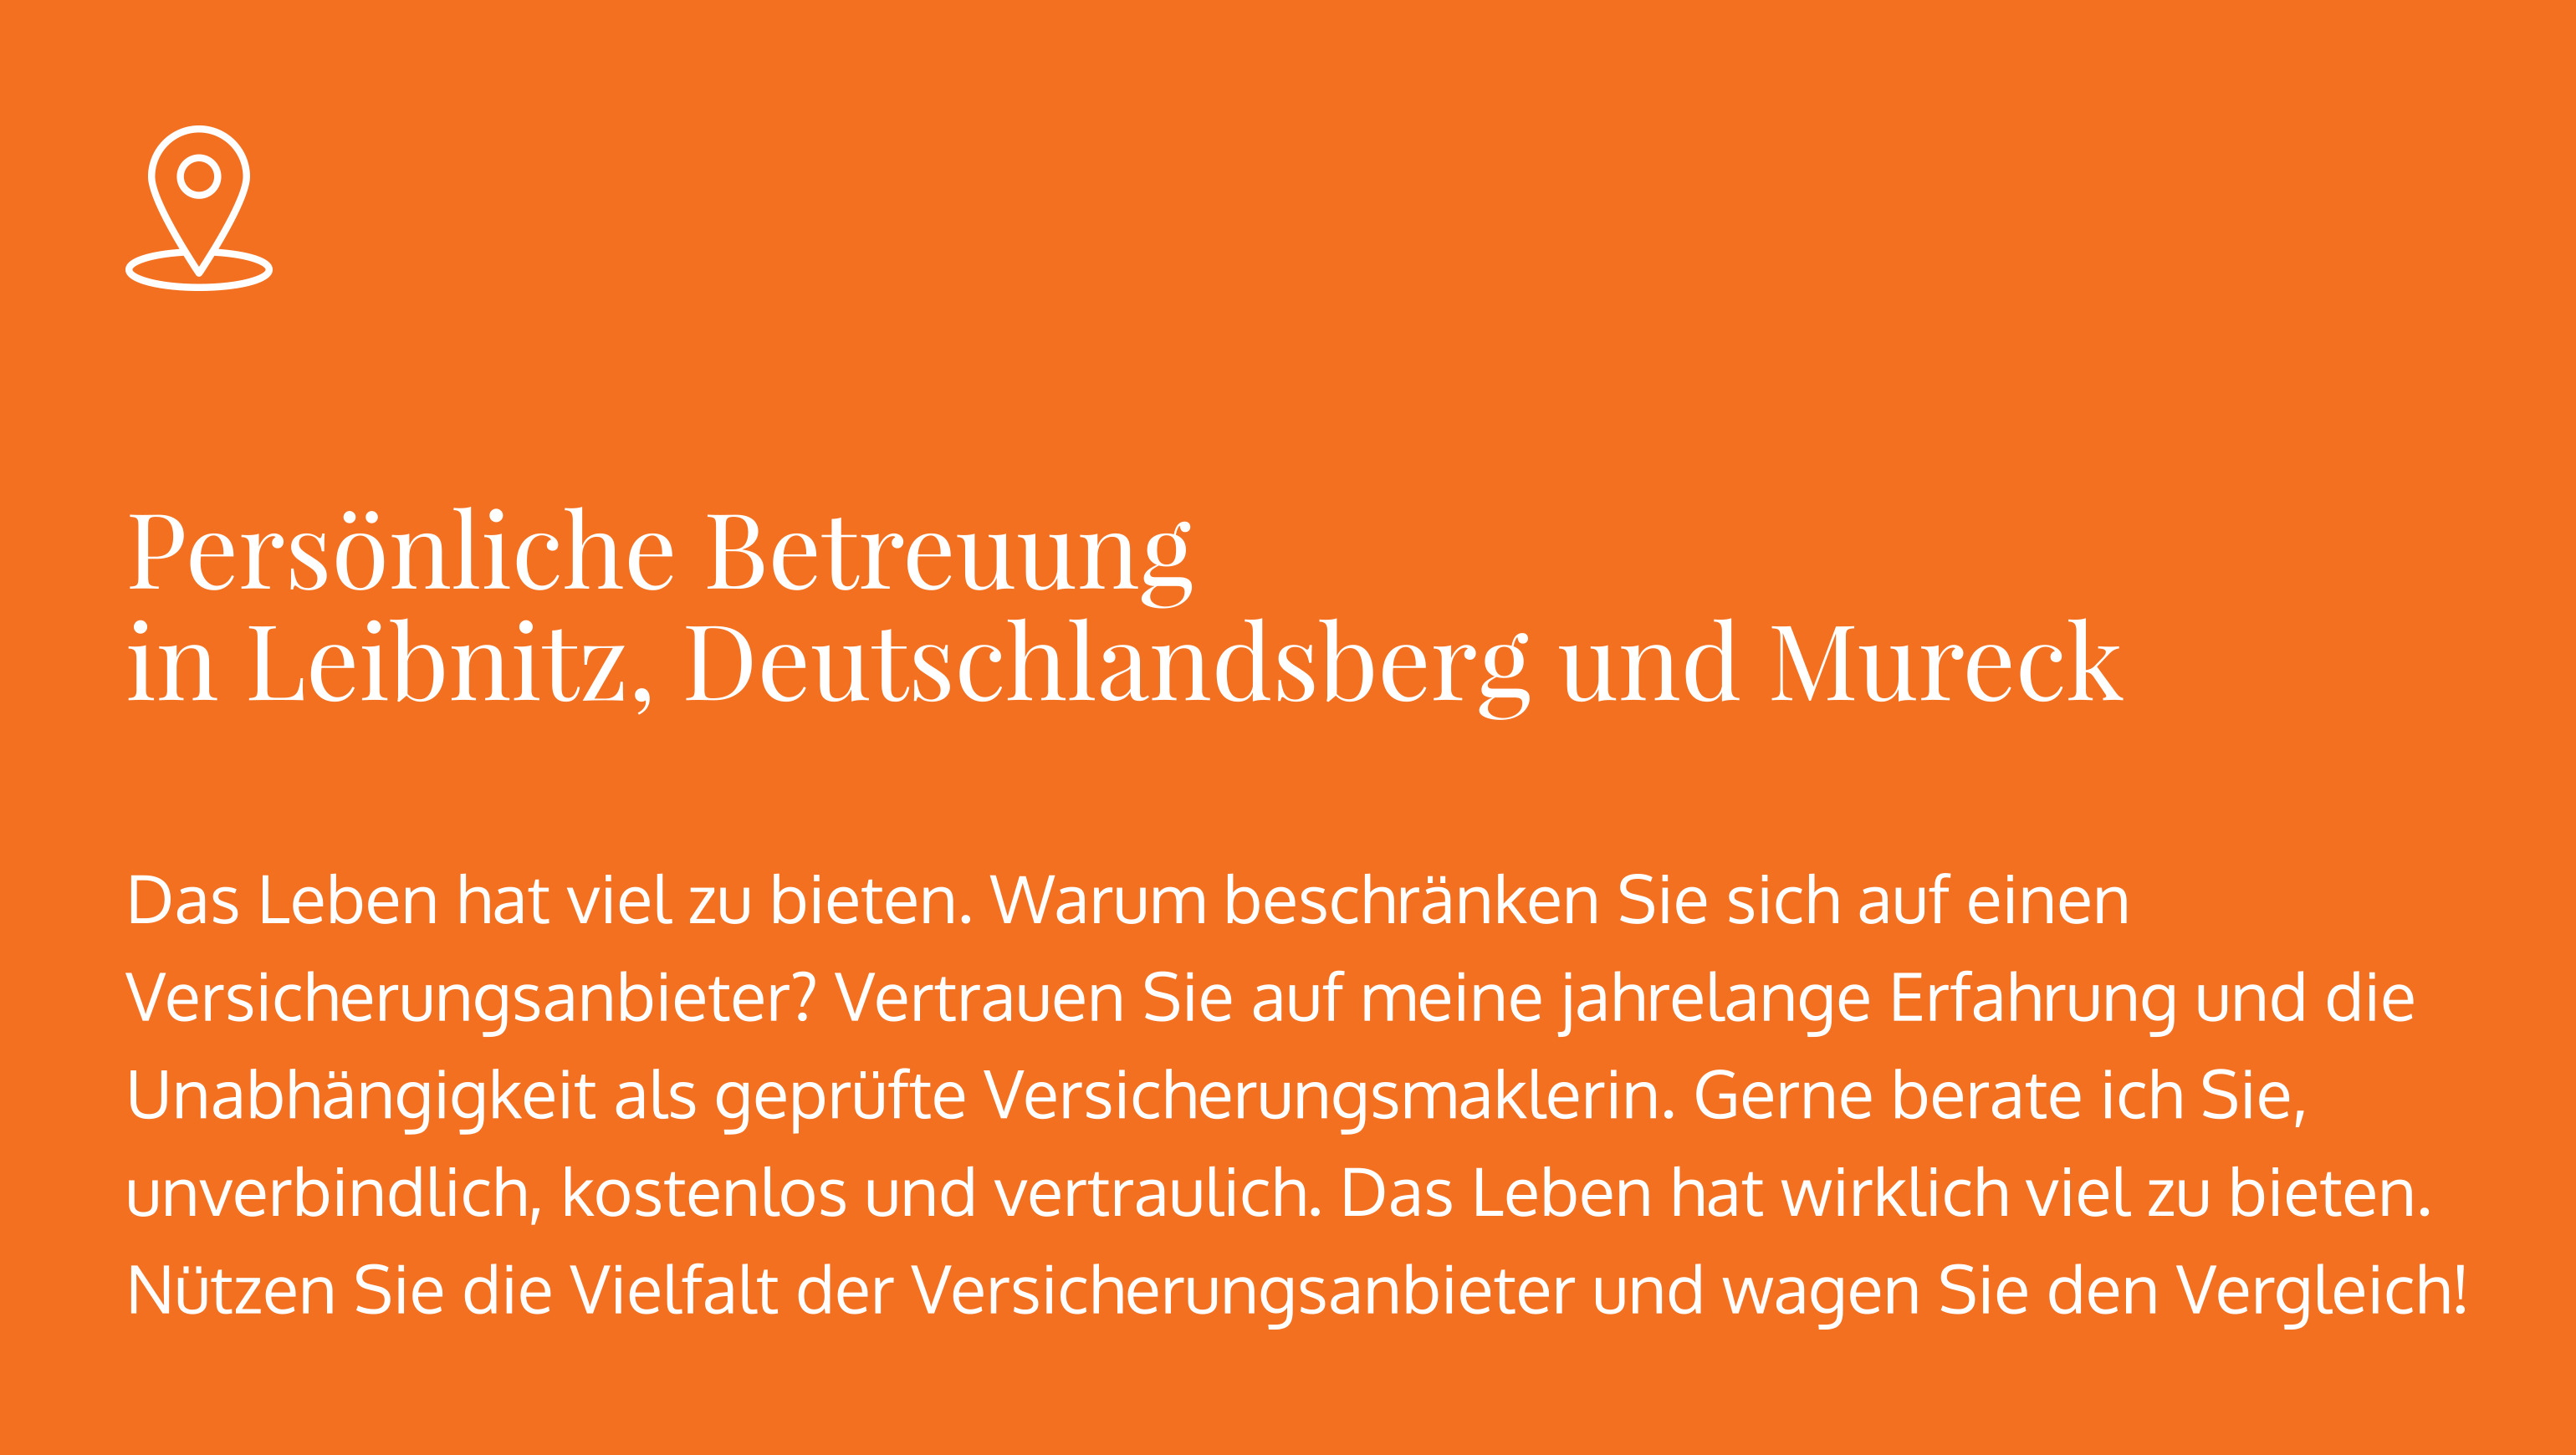 nm-pers-betreuung